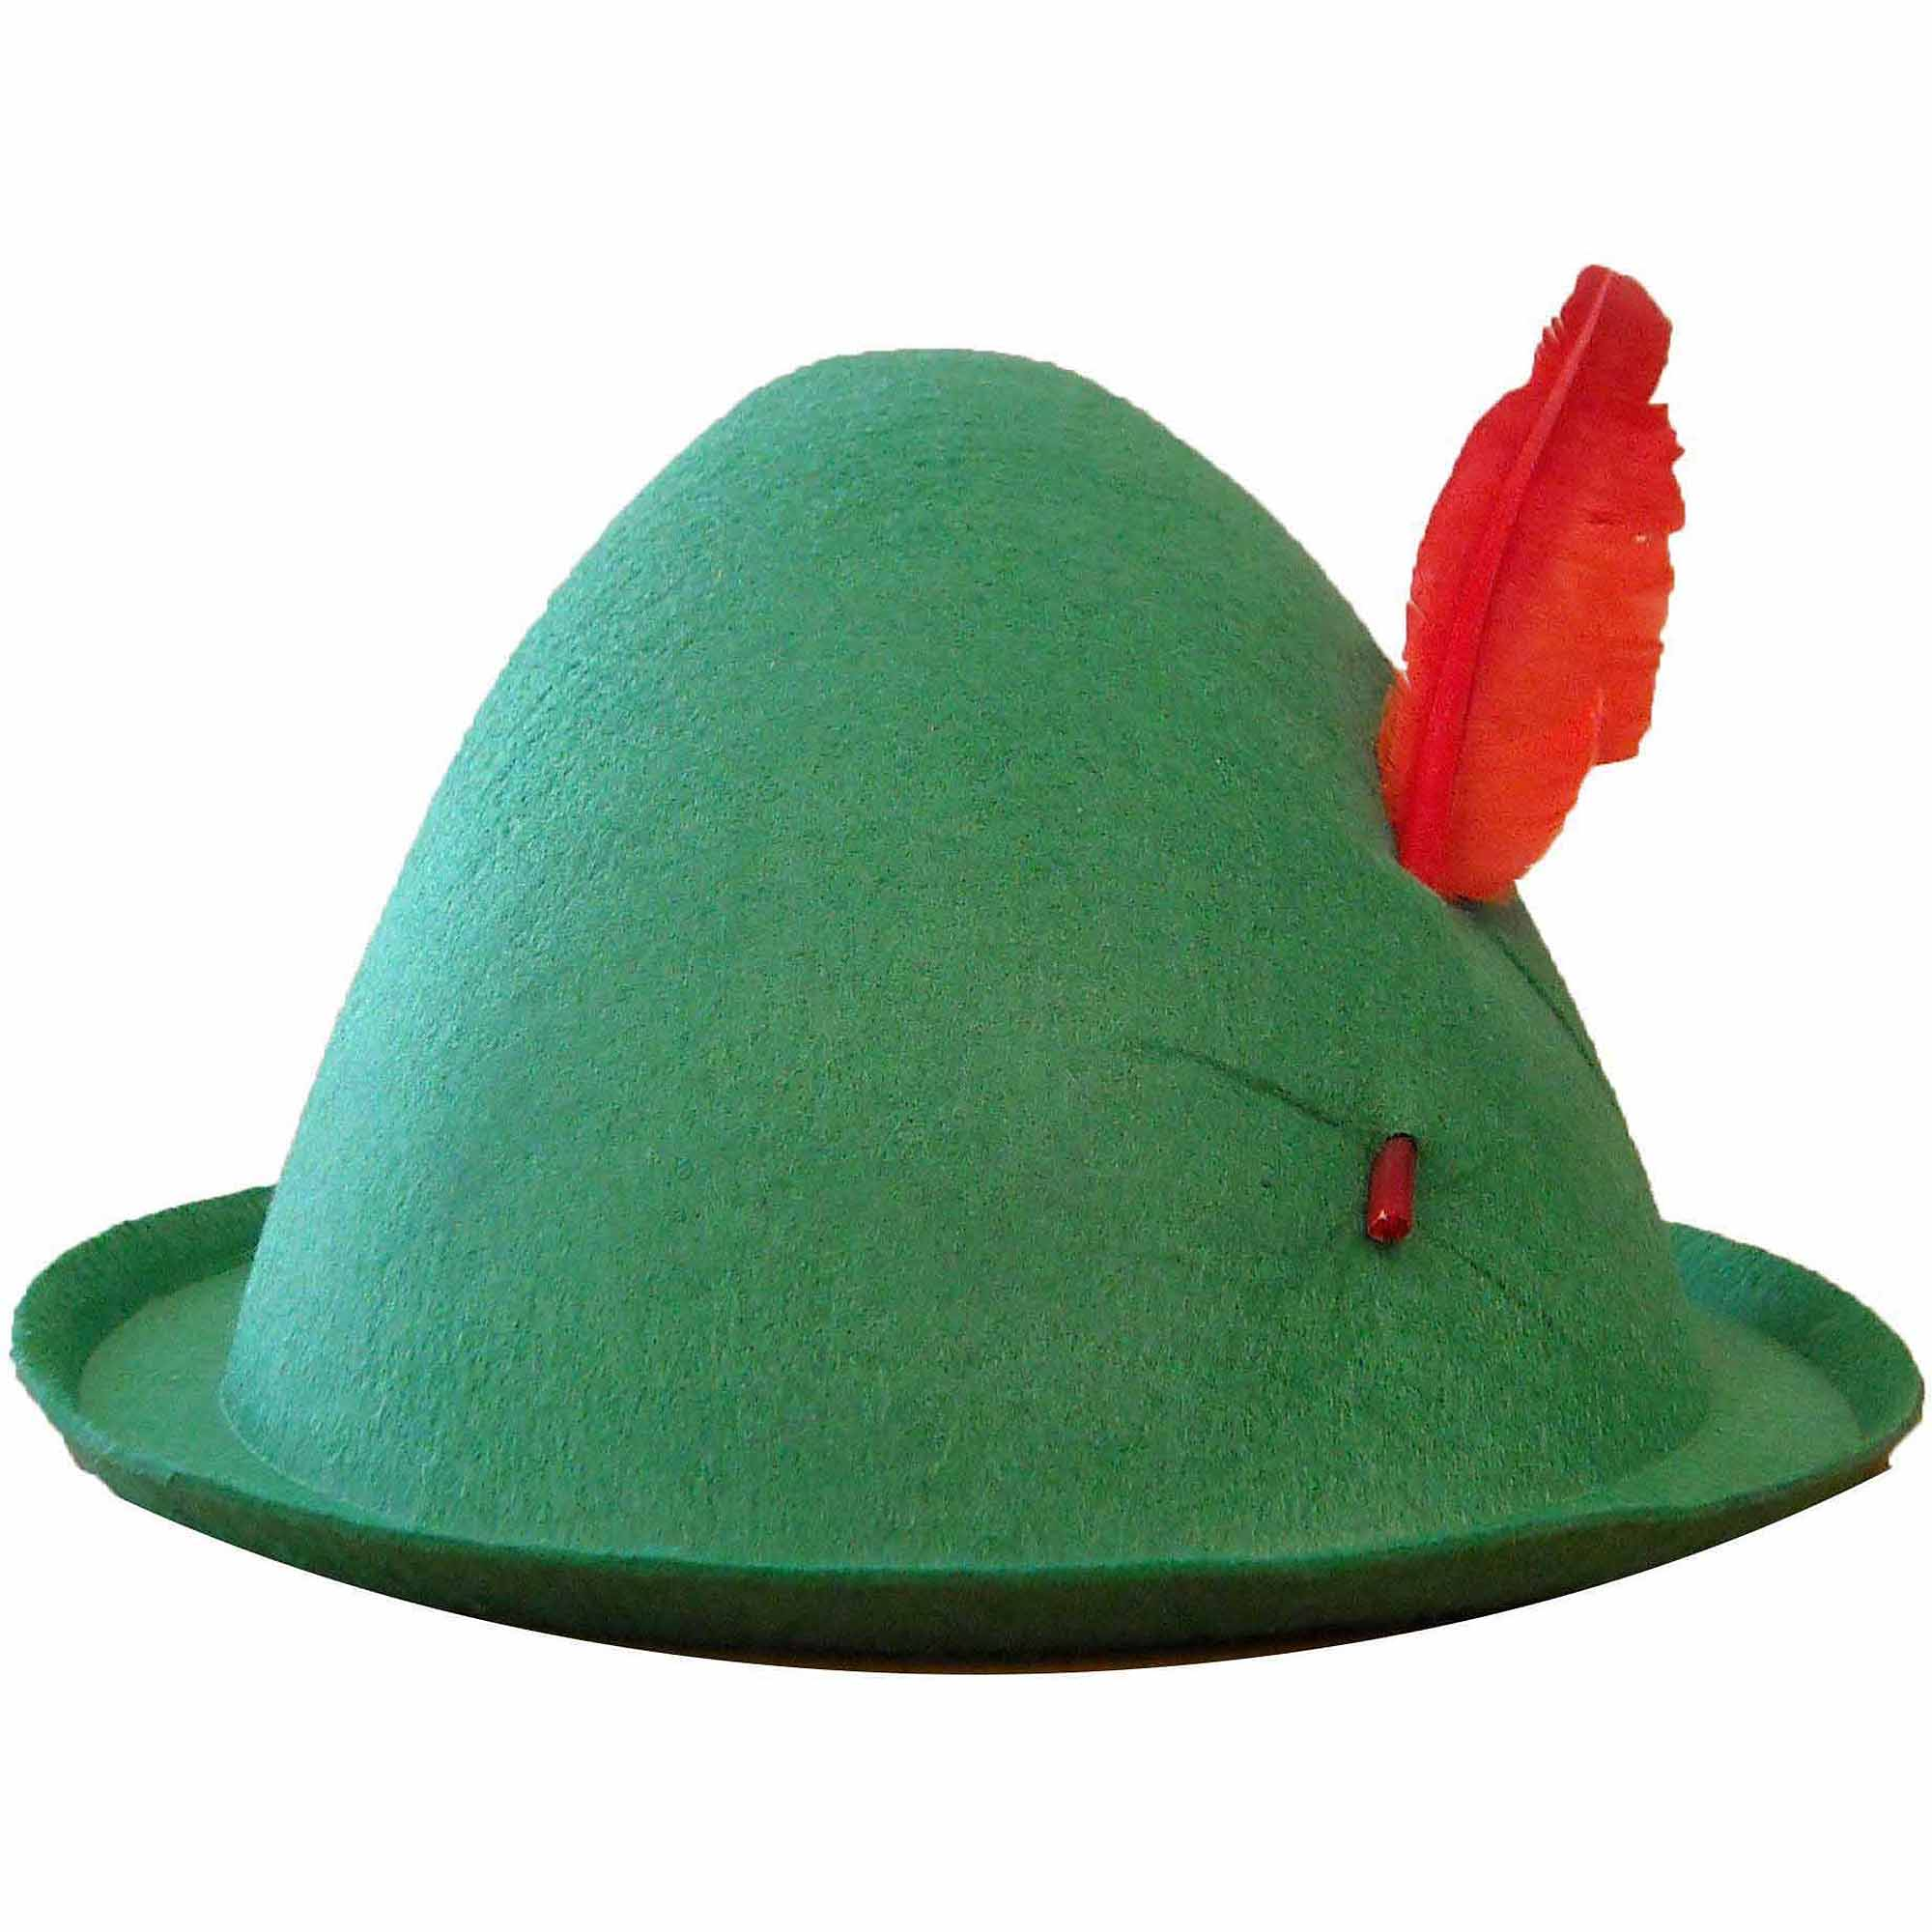 Economy Alpine Hat with Feather Adult Halloween Costume Accessory